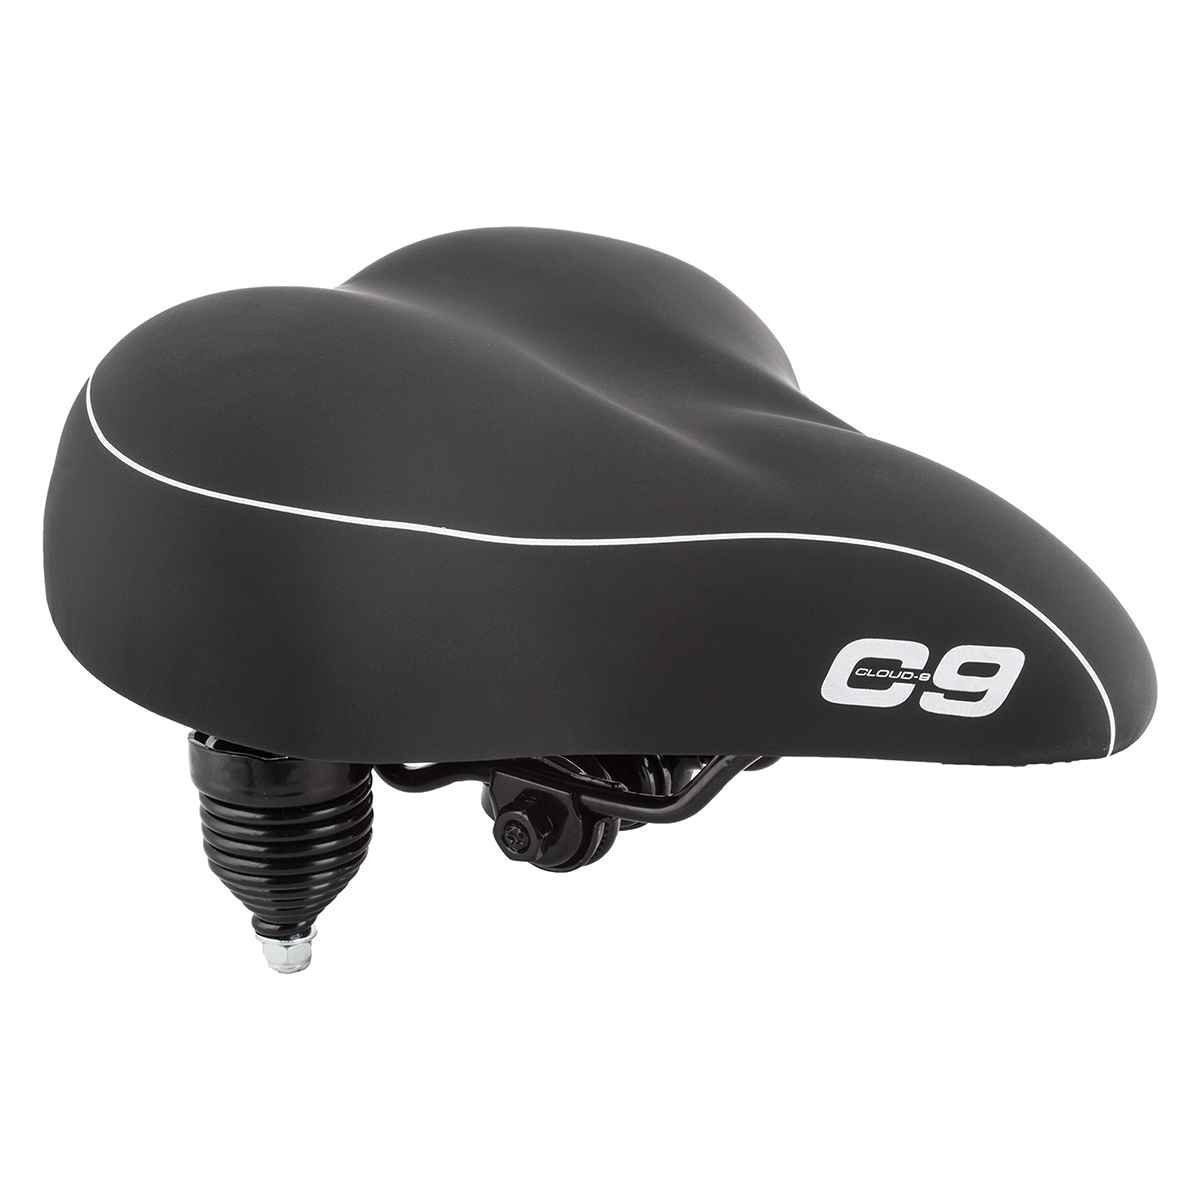 Sunlite Cloud-9 Bicycle Saddle